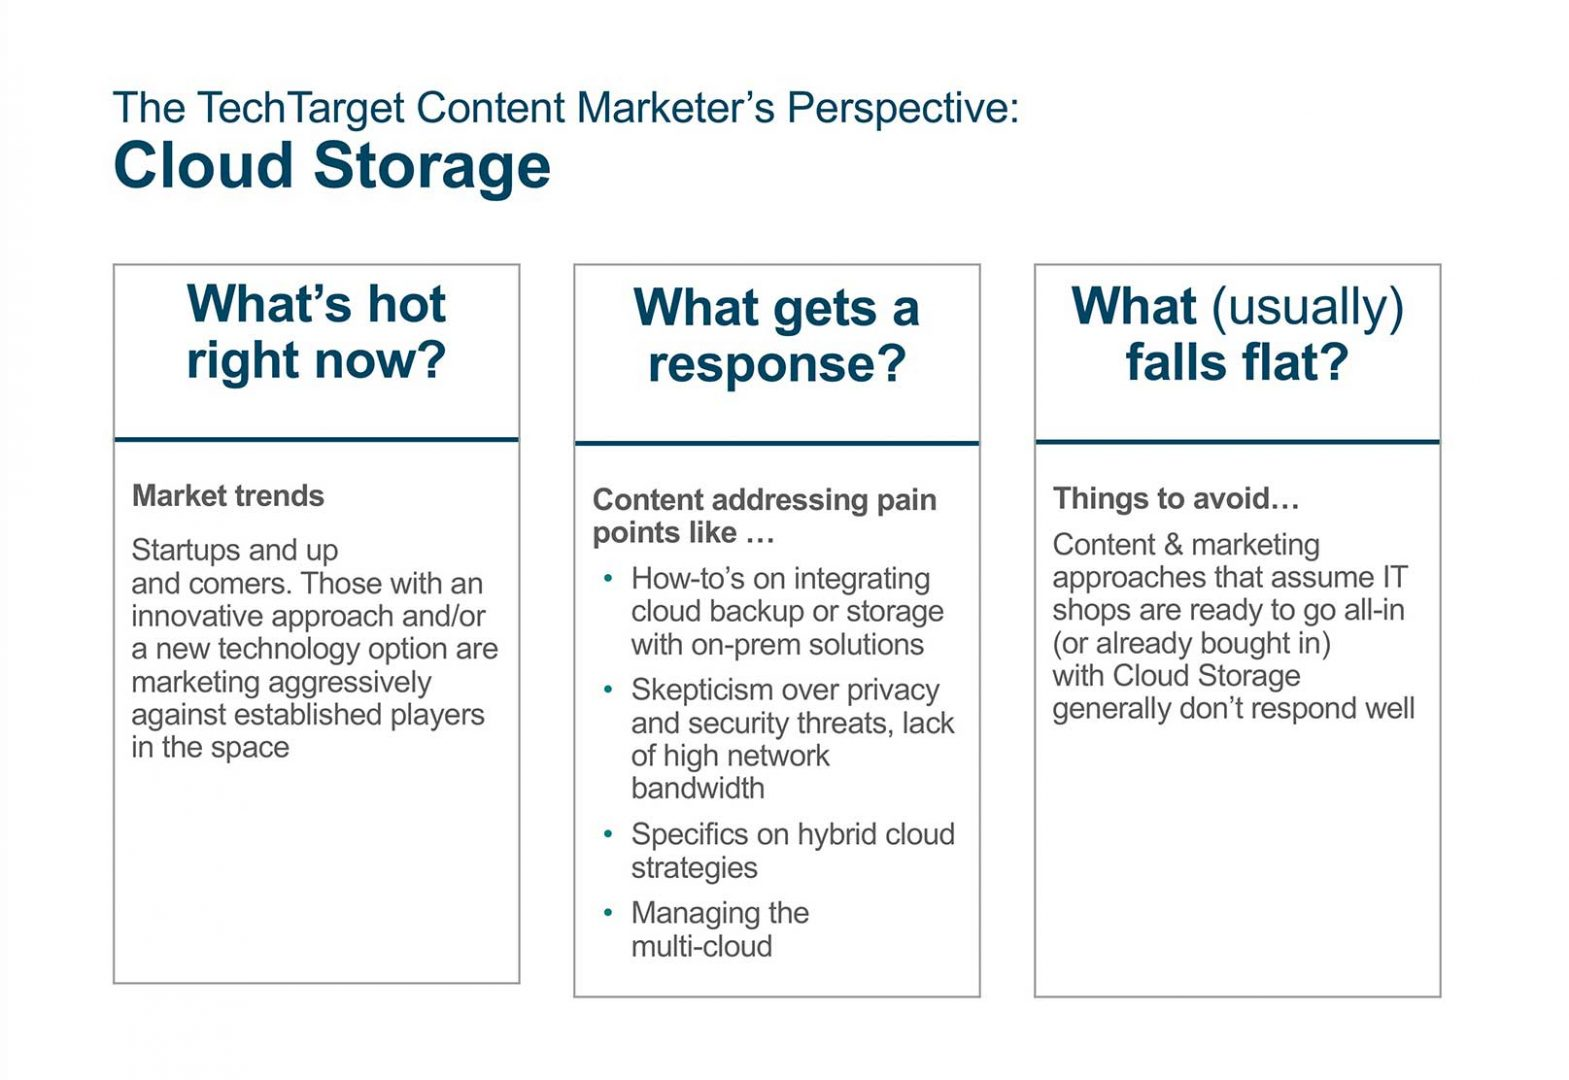 echTarget Content Marketer's Perspective on Cloud Storage